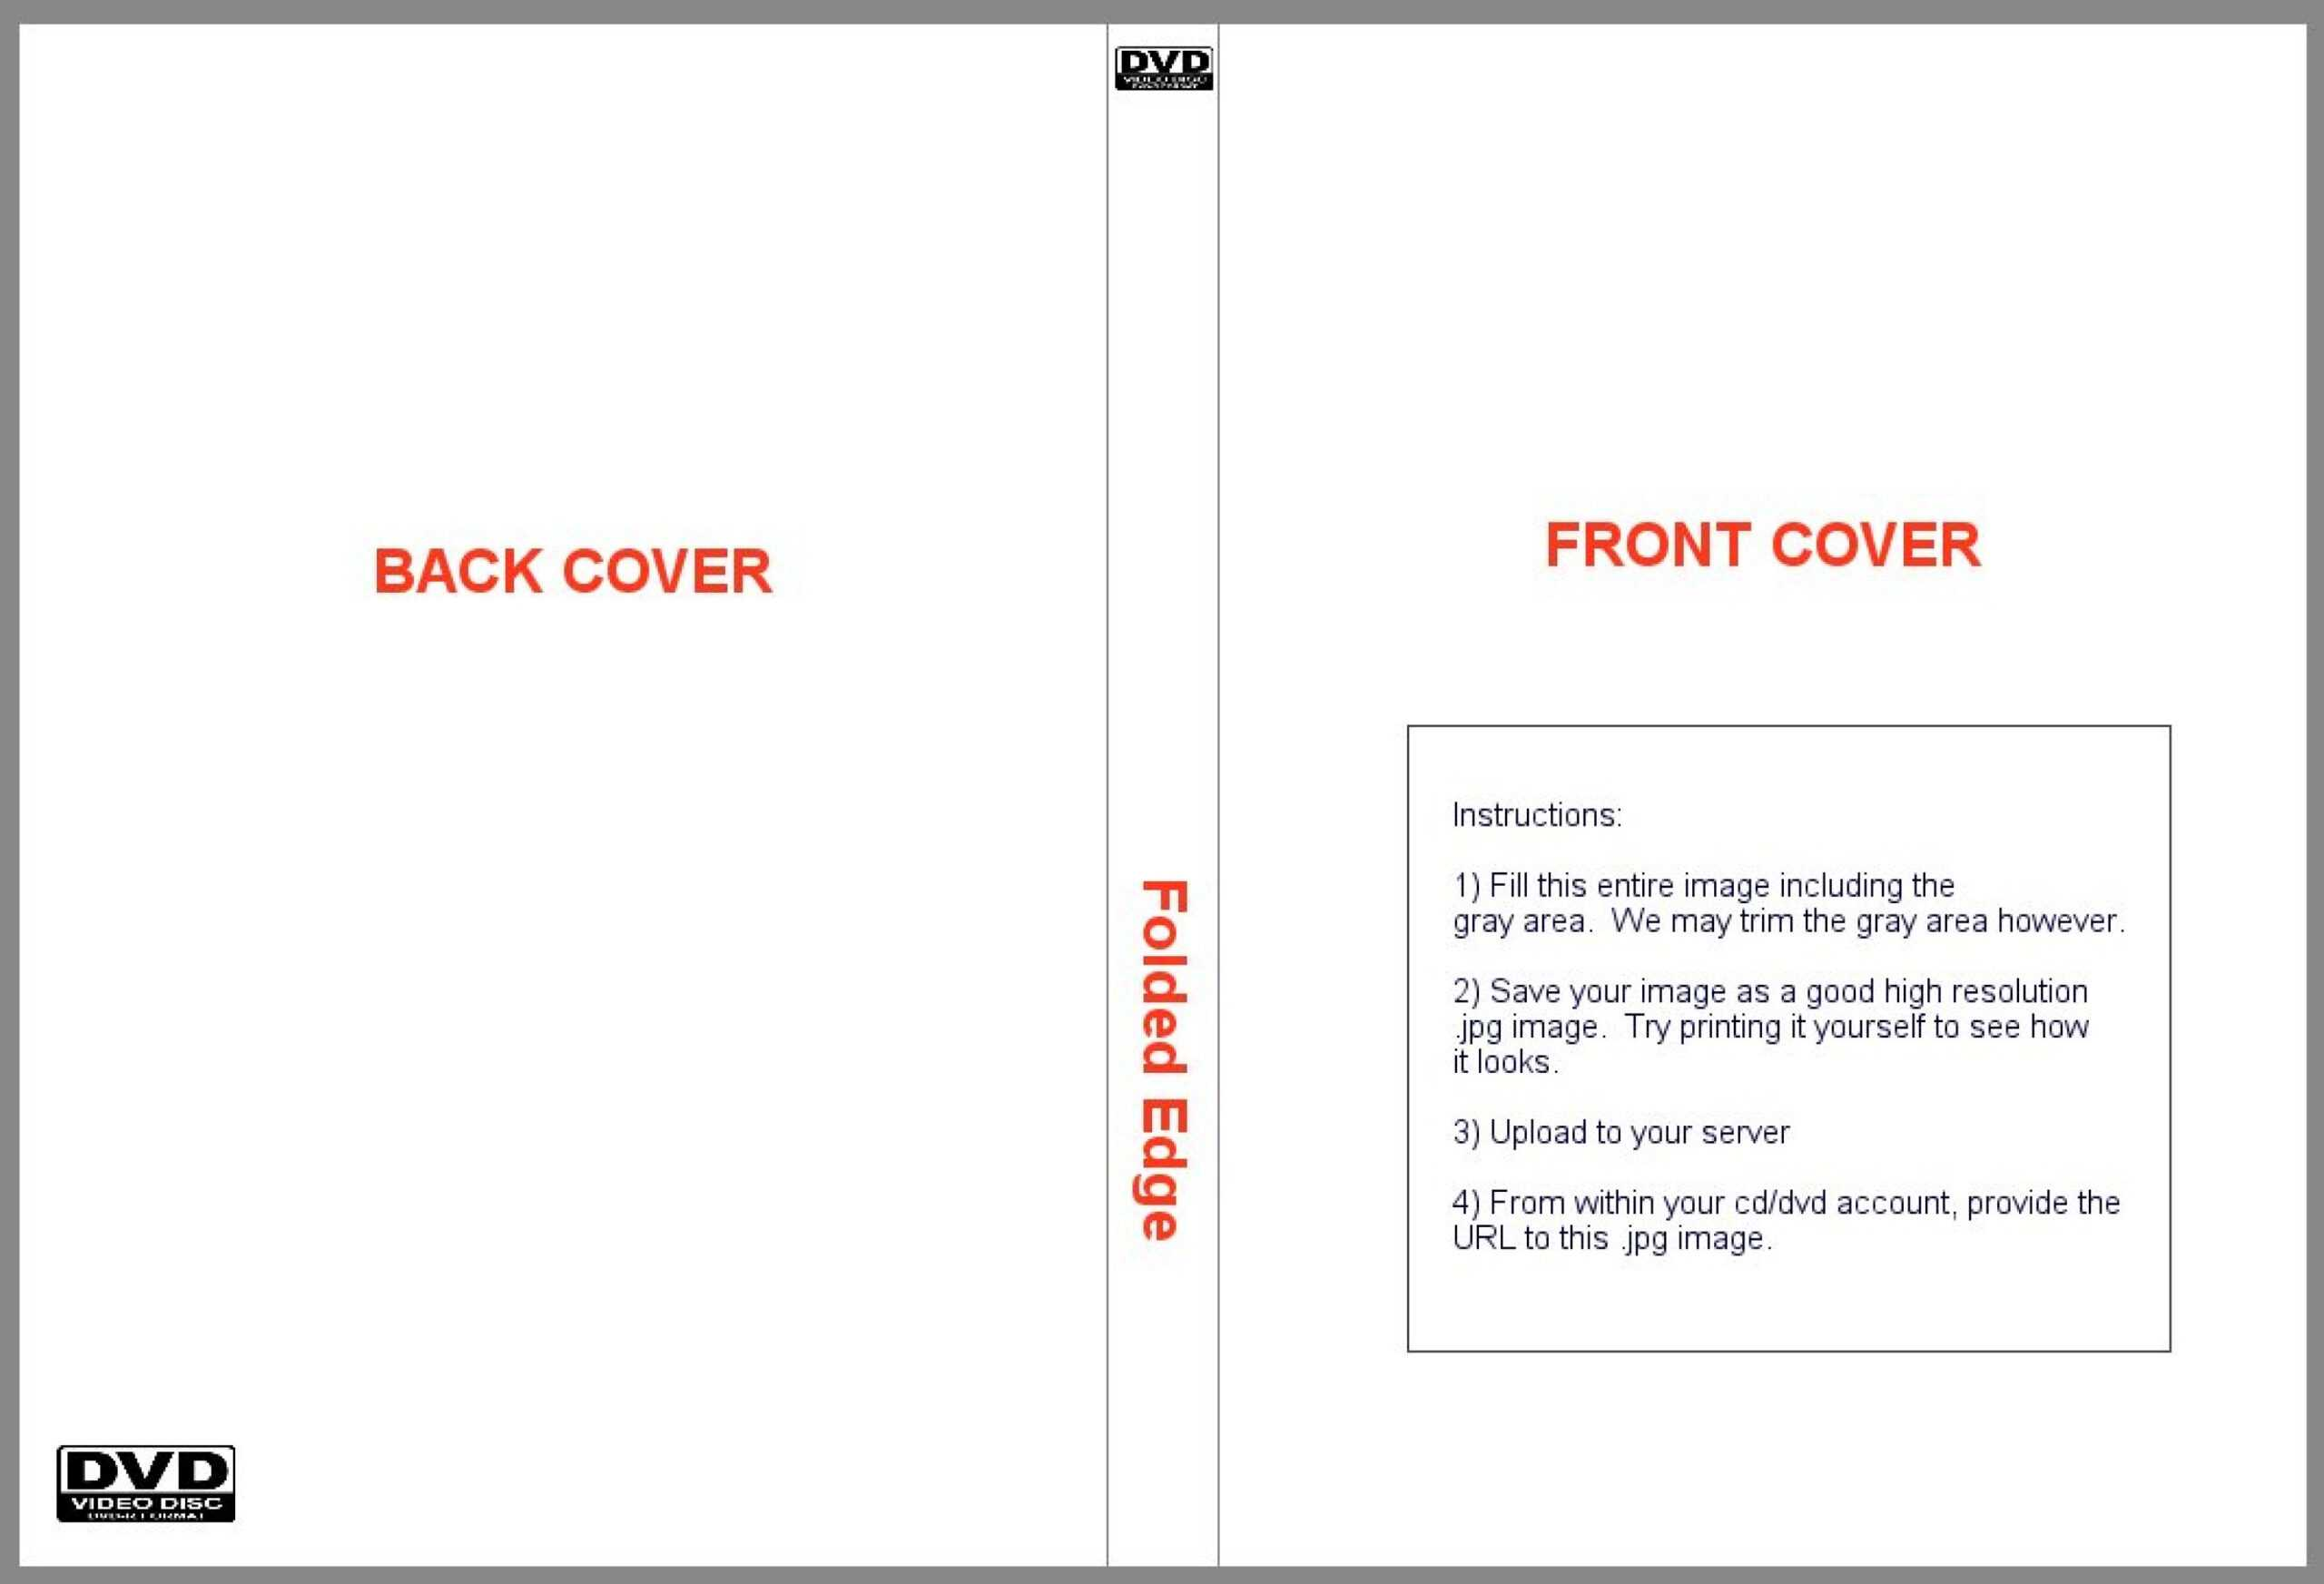 008 Dvd Cover Template Czwulgvg Case Label Free Impressive Regarding Cd Liner Notes Template Word